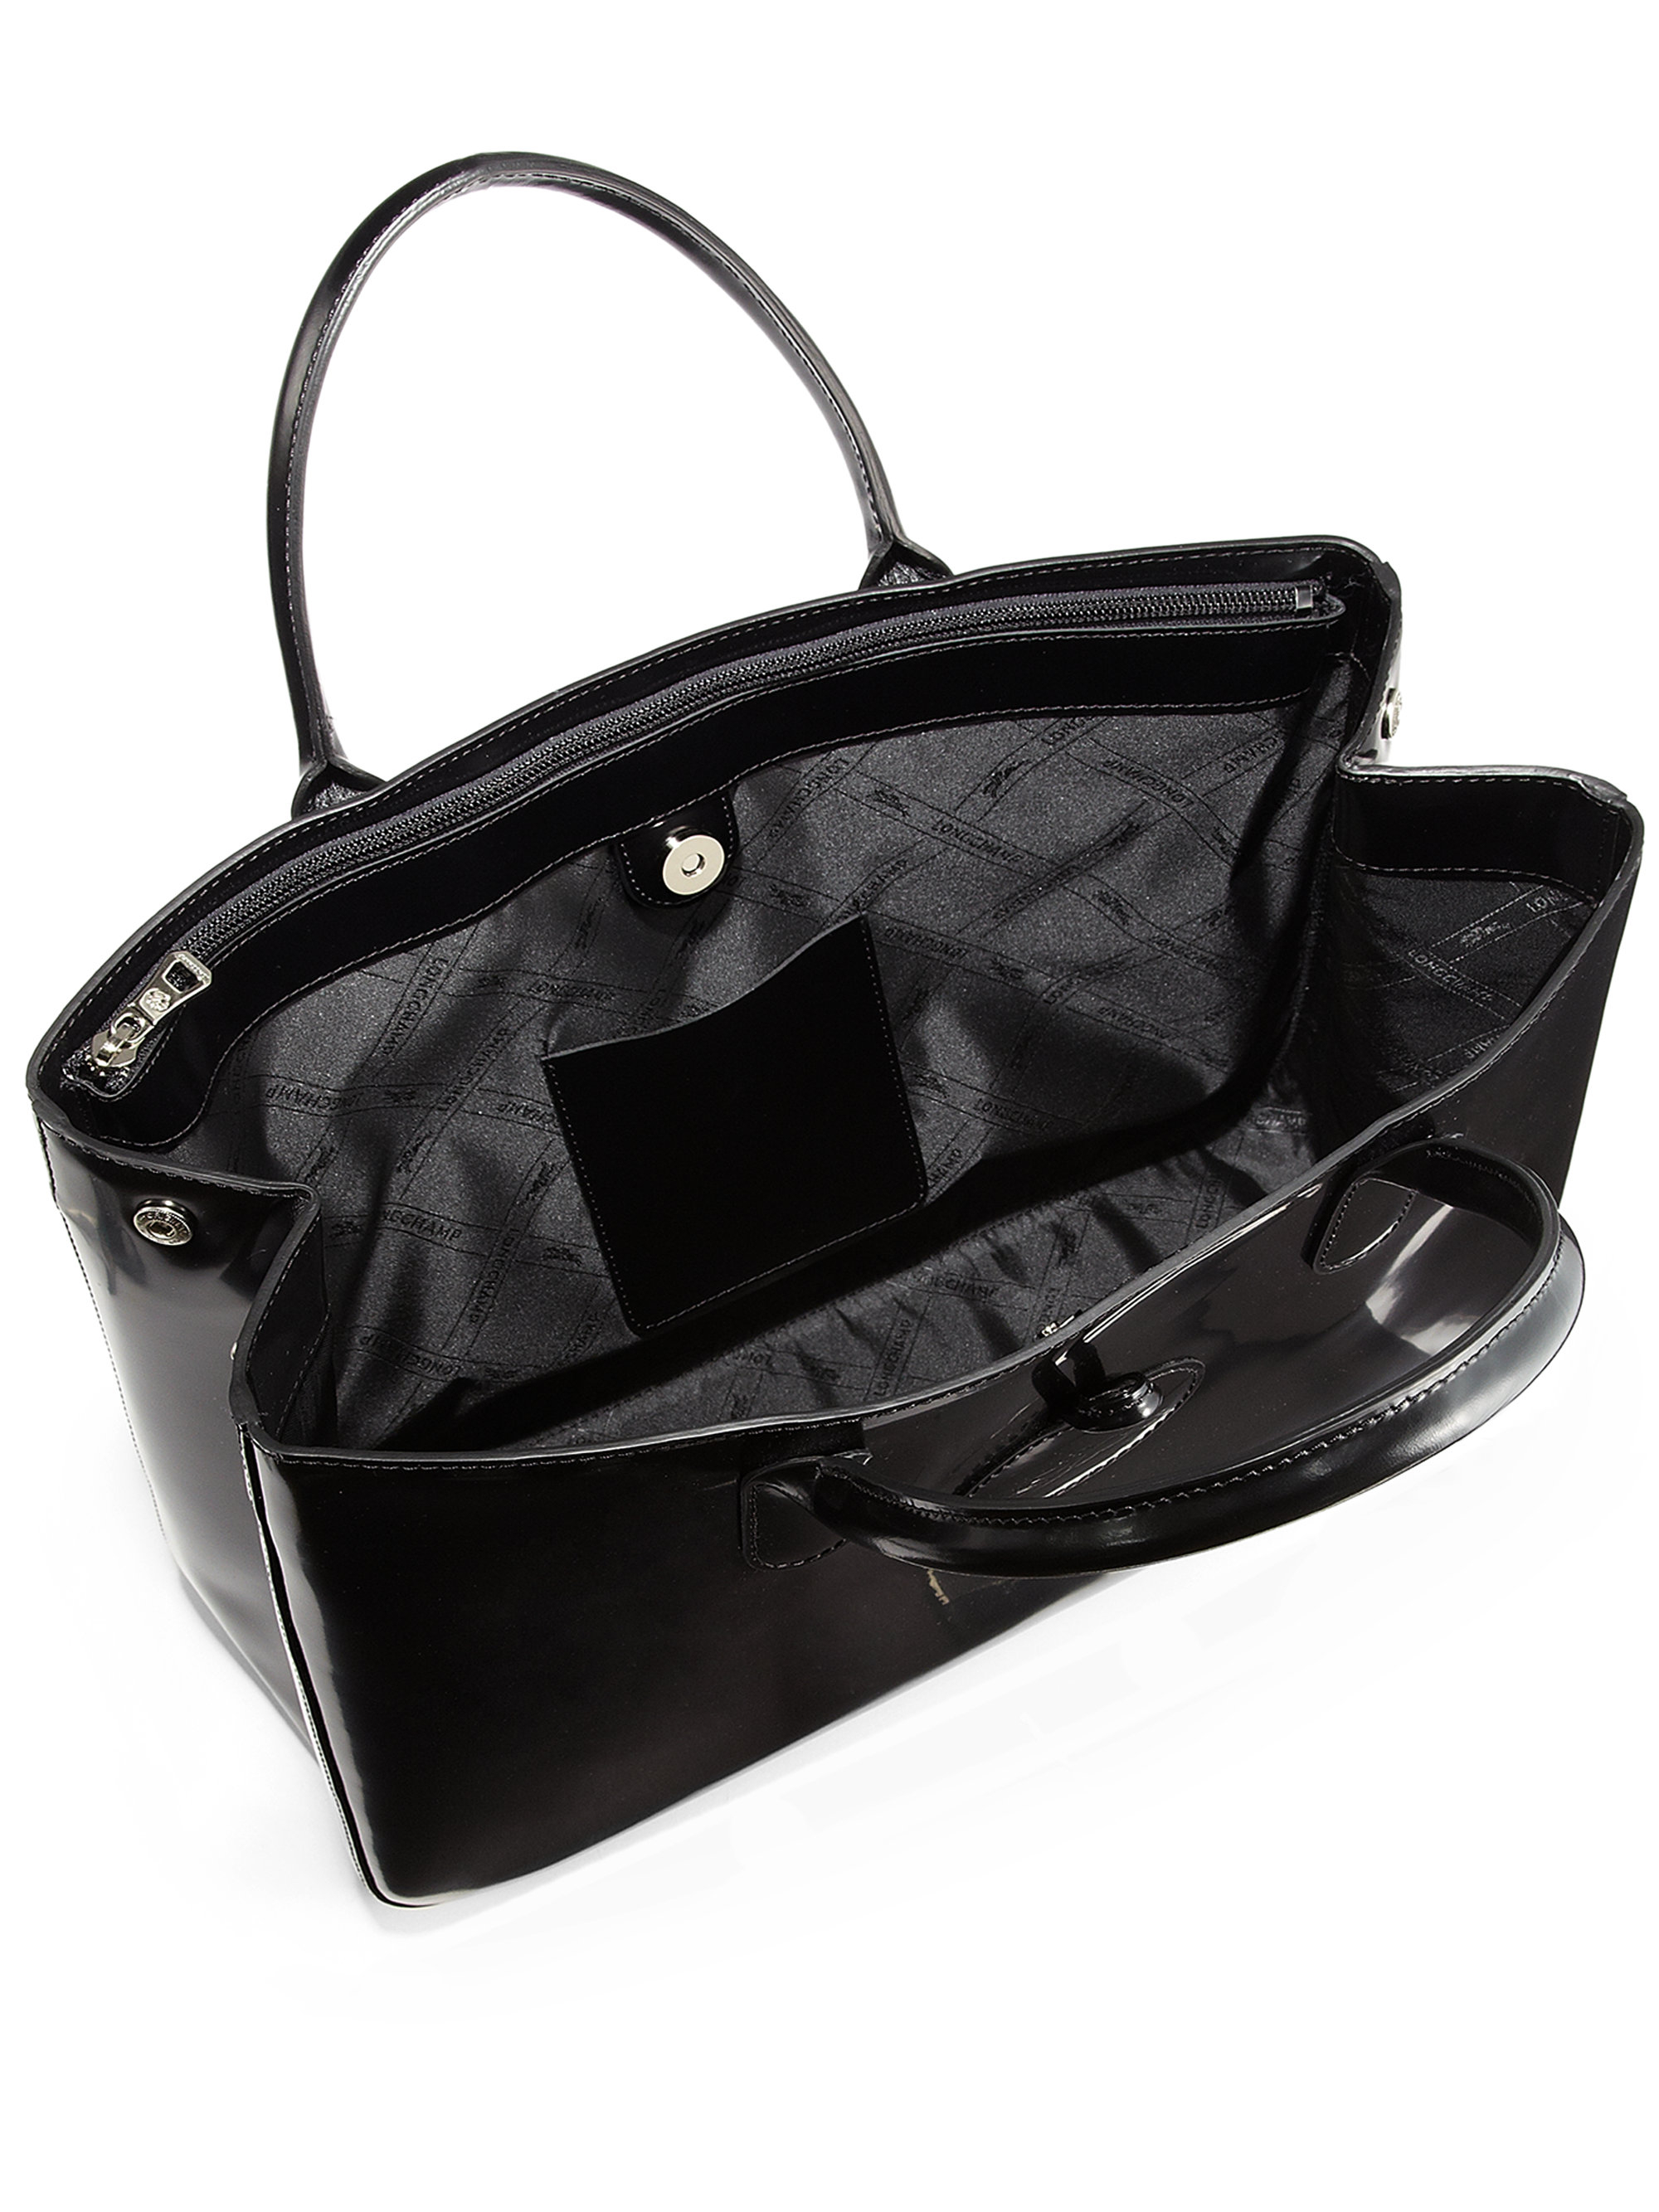 e6b20d2e8bc Longchamp Roseau Large Patent Leather Box Tote in Black - Lyst